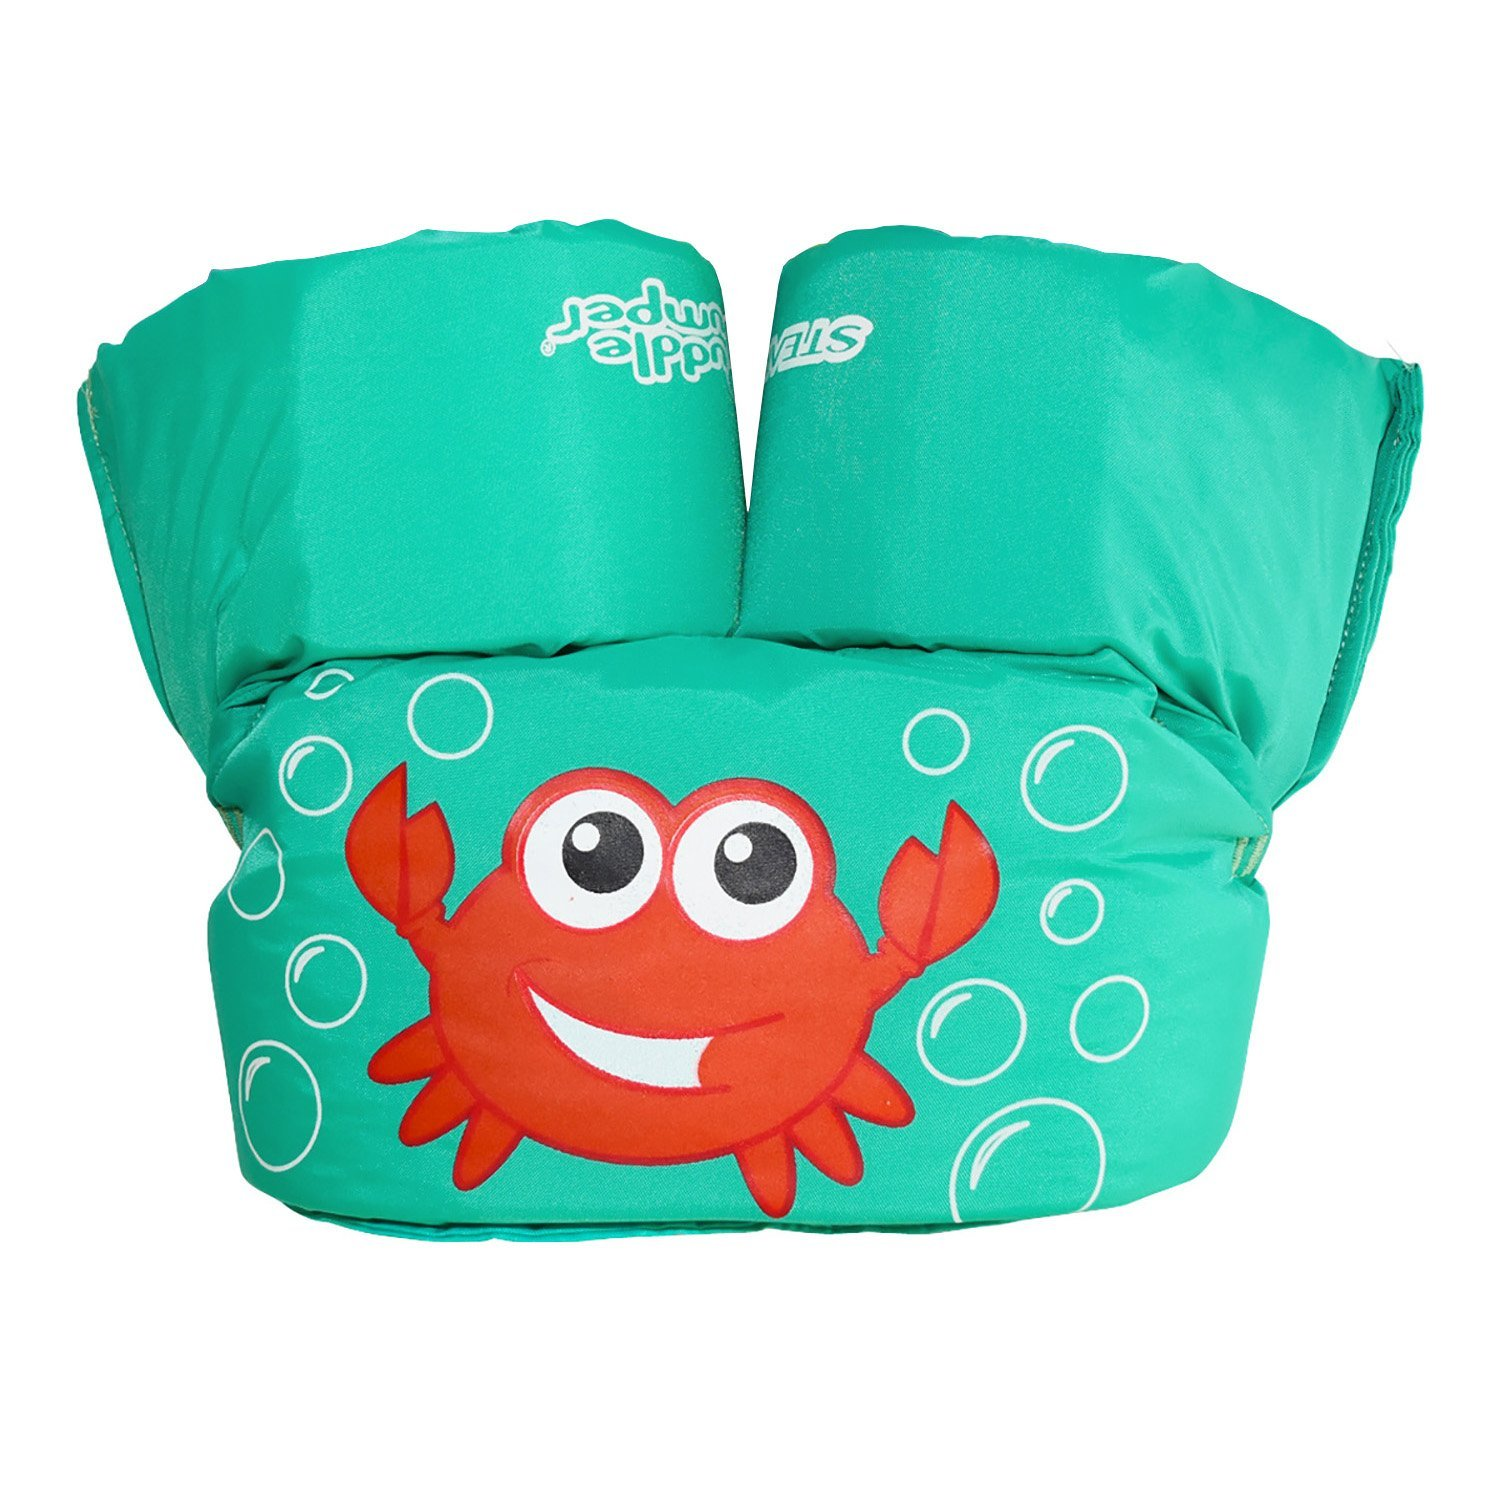 1500x1500 Stearns Puddle Jumper Child Life Jacket, Blue Crab